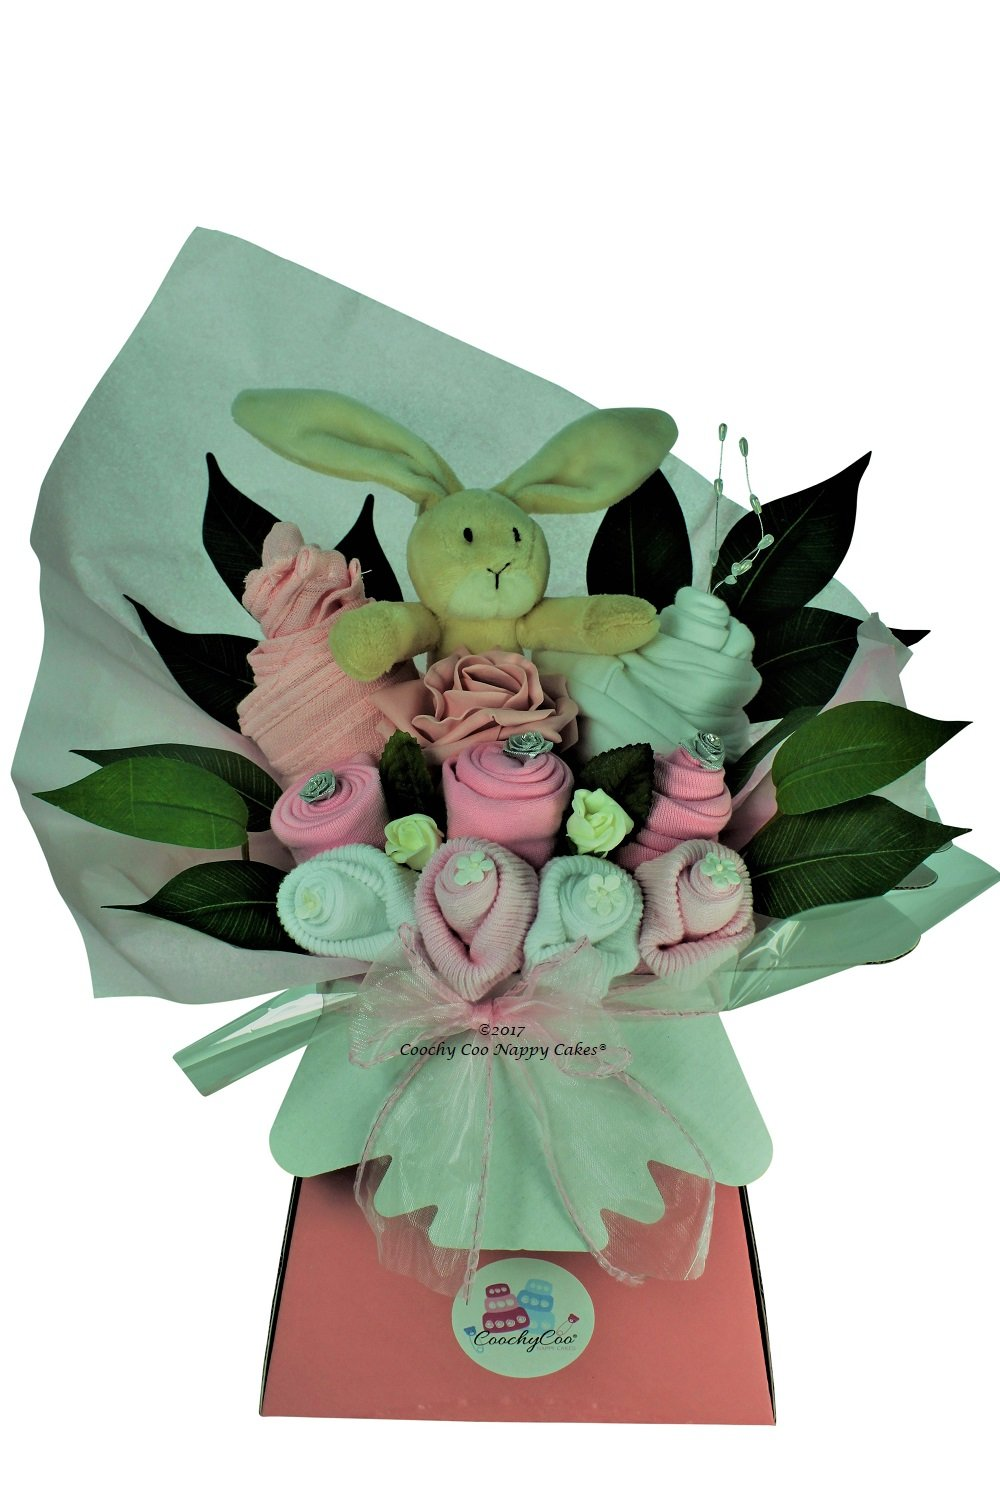 Girls Pink Baby Clothes Bouquet gift with toy - FREE Delivery (Pink) Coochy Coo Nappy Cakes®